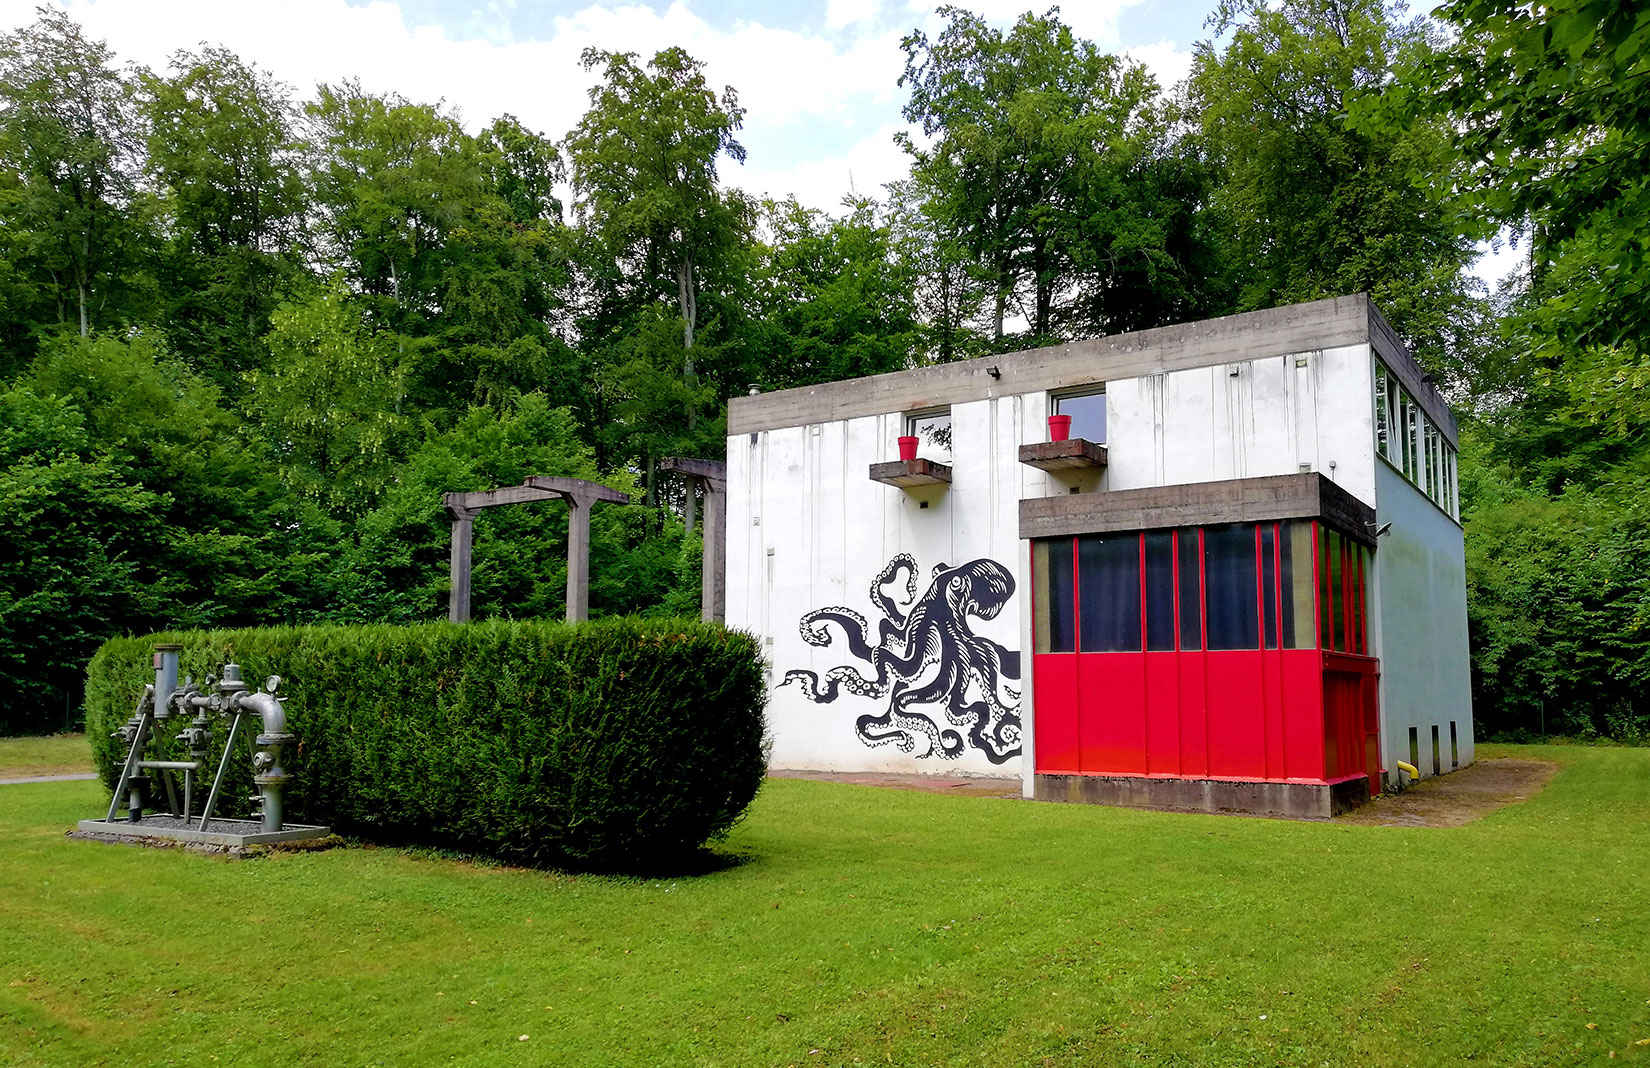 Pint-sized Le Corbusier home lists for less than €450,000